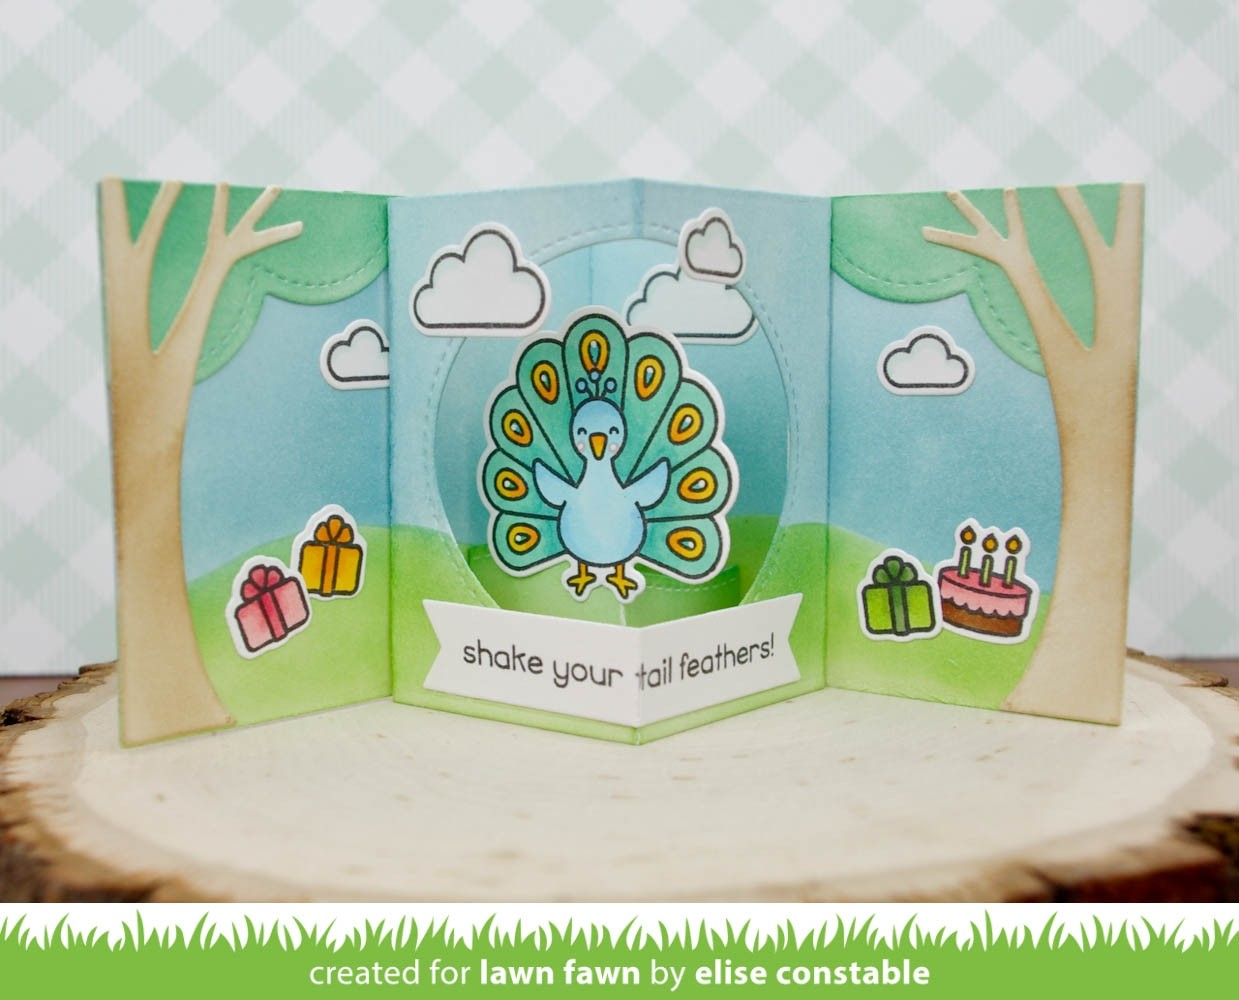 SALE - Lawn Fawn center picture window card